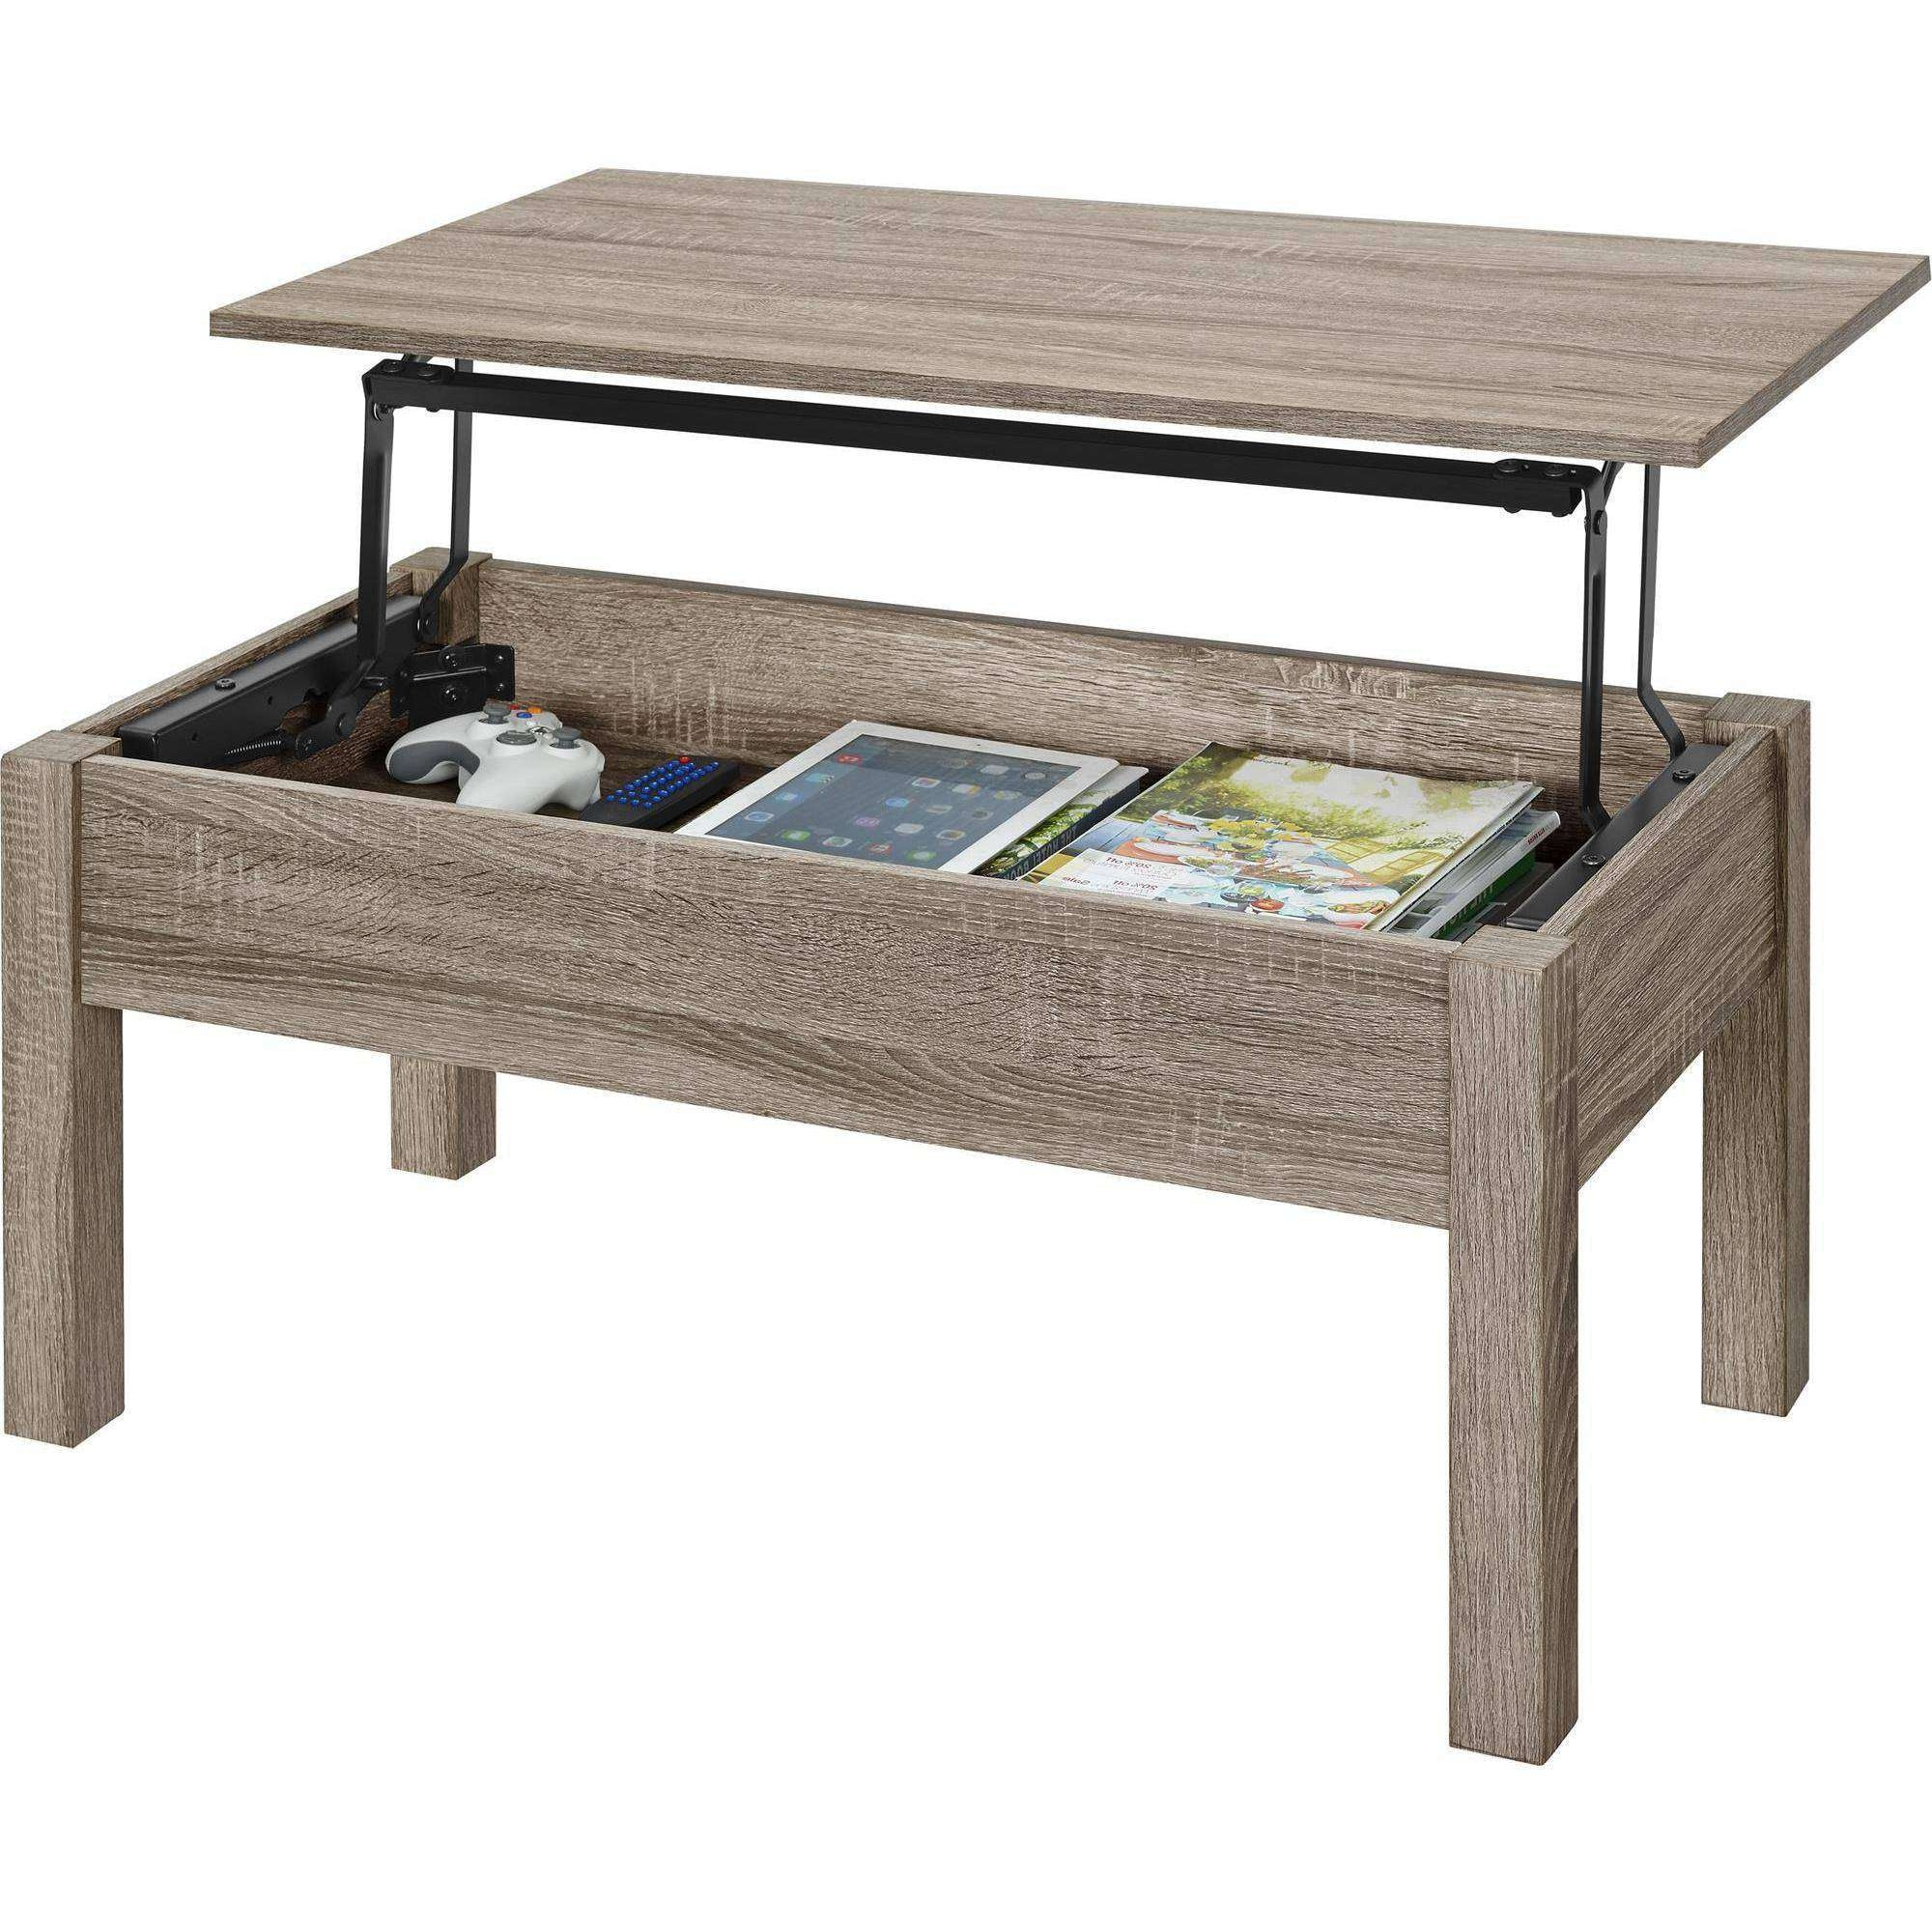 Mainstays Lift Top Coffee Table, Multiple Colors – Walmart Within Current Pull Up Coffee Tables (View 6 of 20)